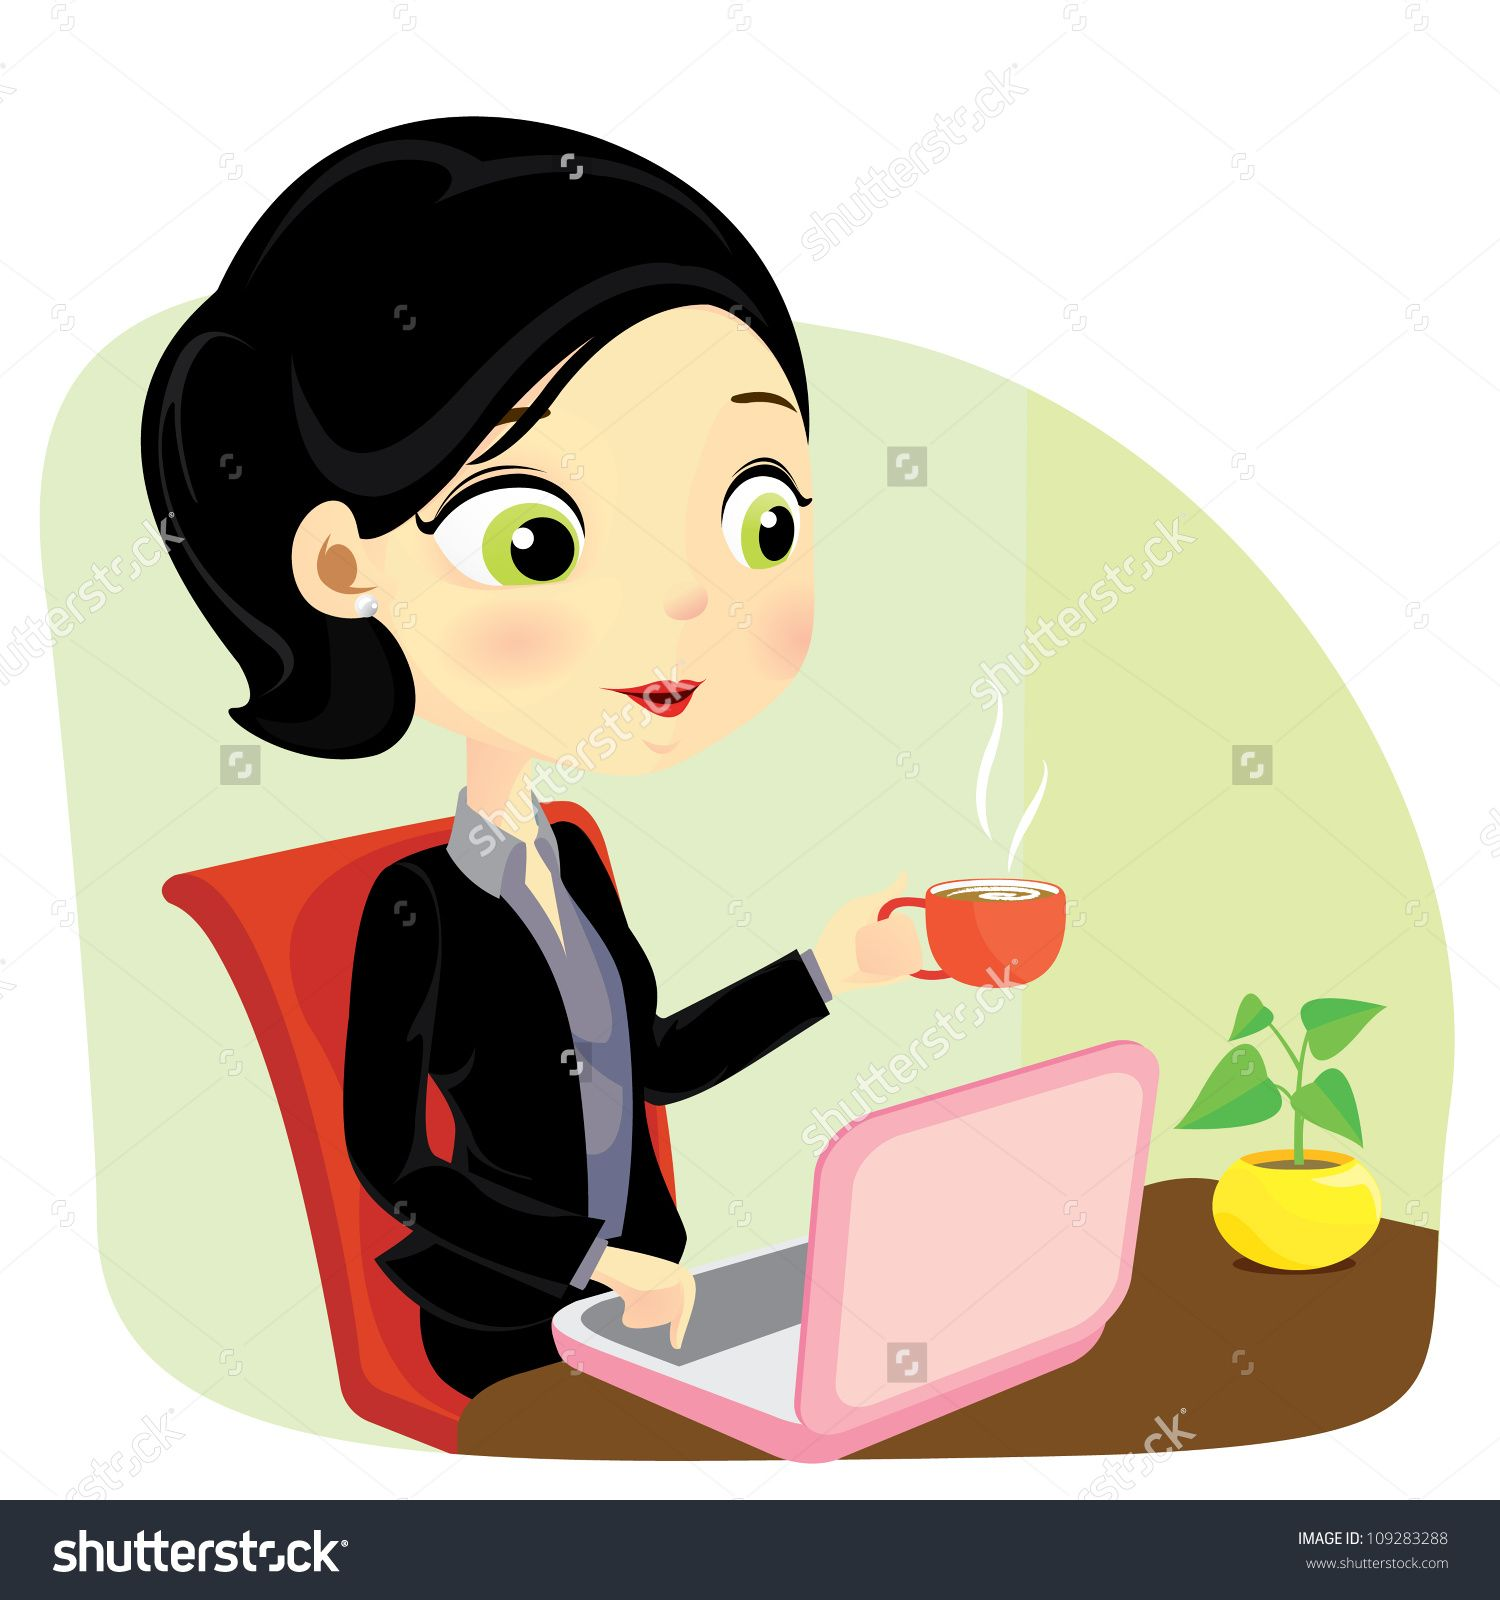 best images about administrative executive assistant on 17 best images about administrative executive assistant interview secretary and administrative professional